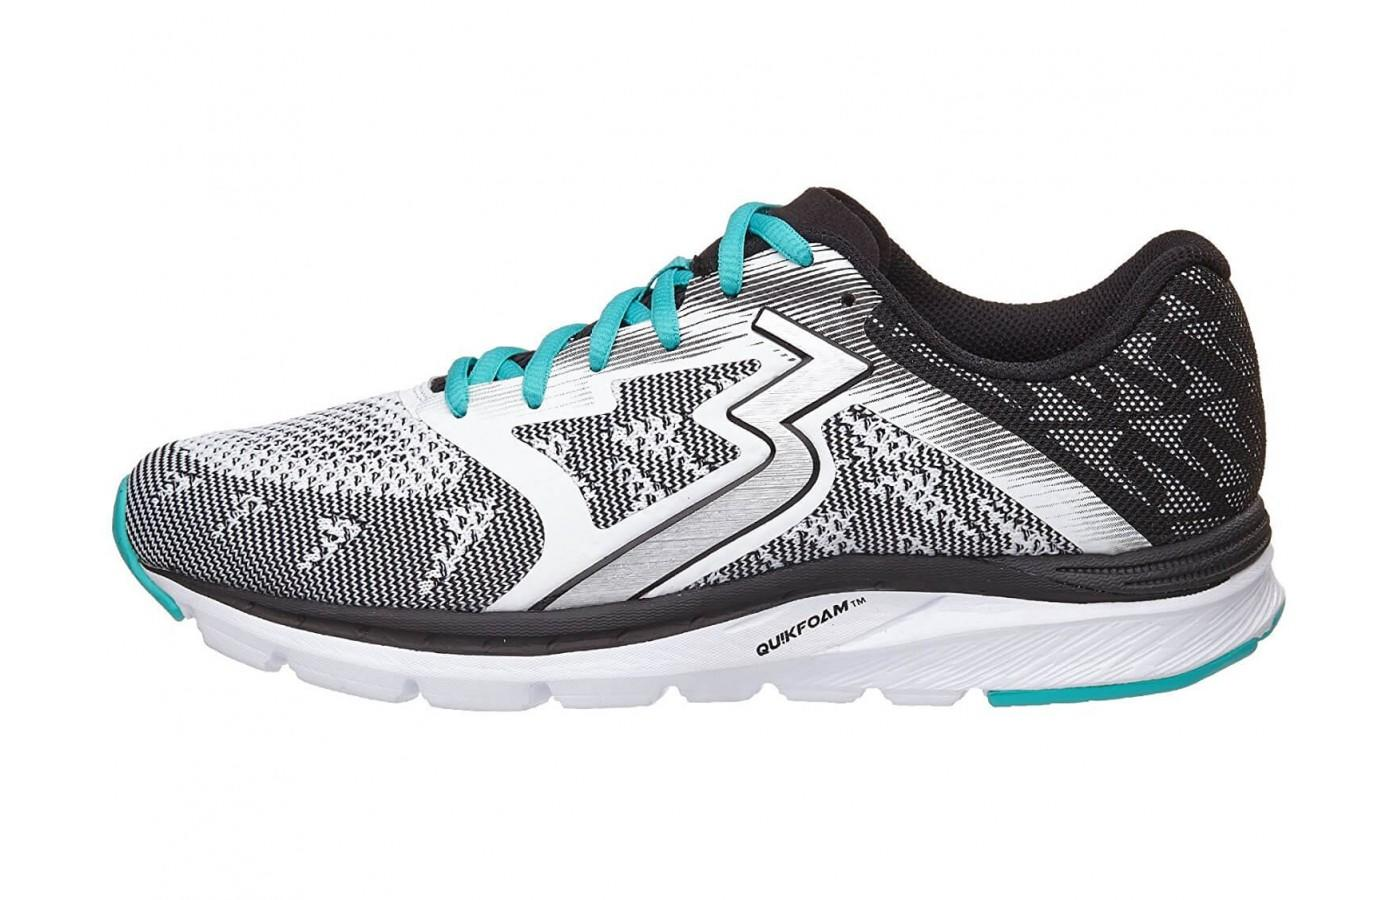 the midsole cushioning is firm and responsive